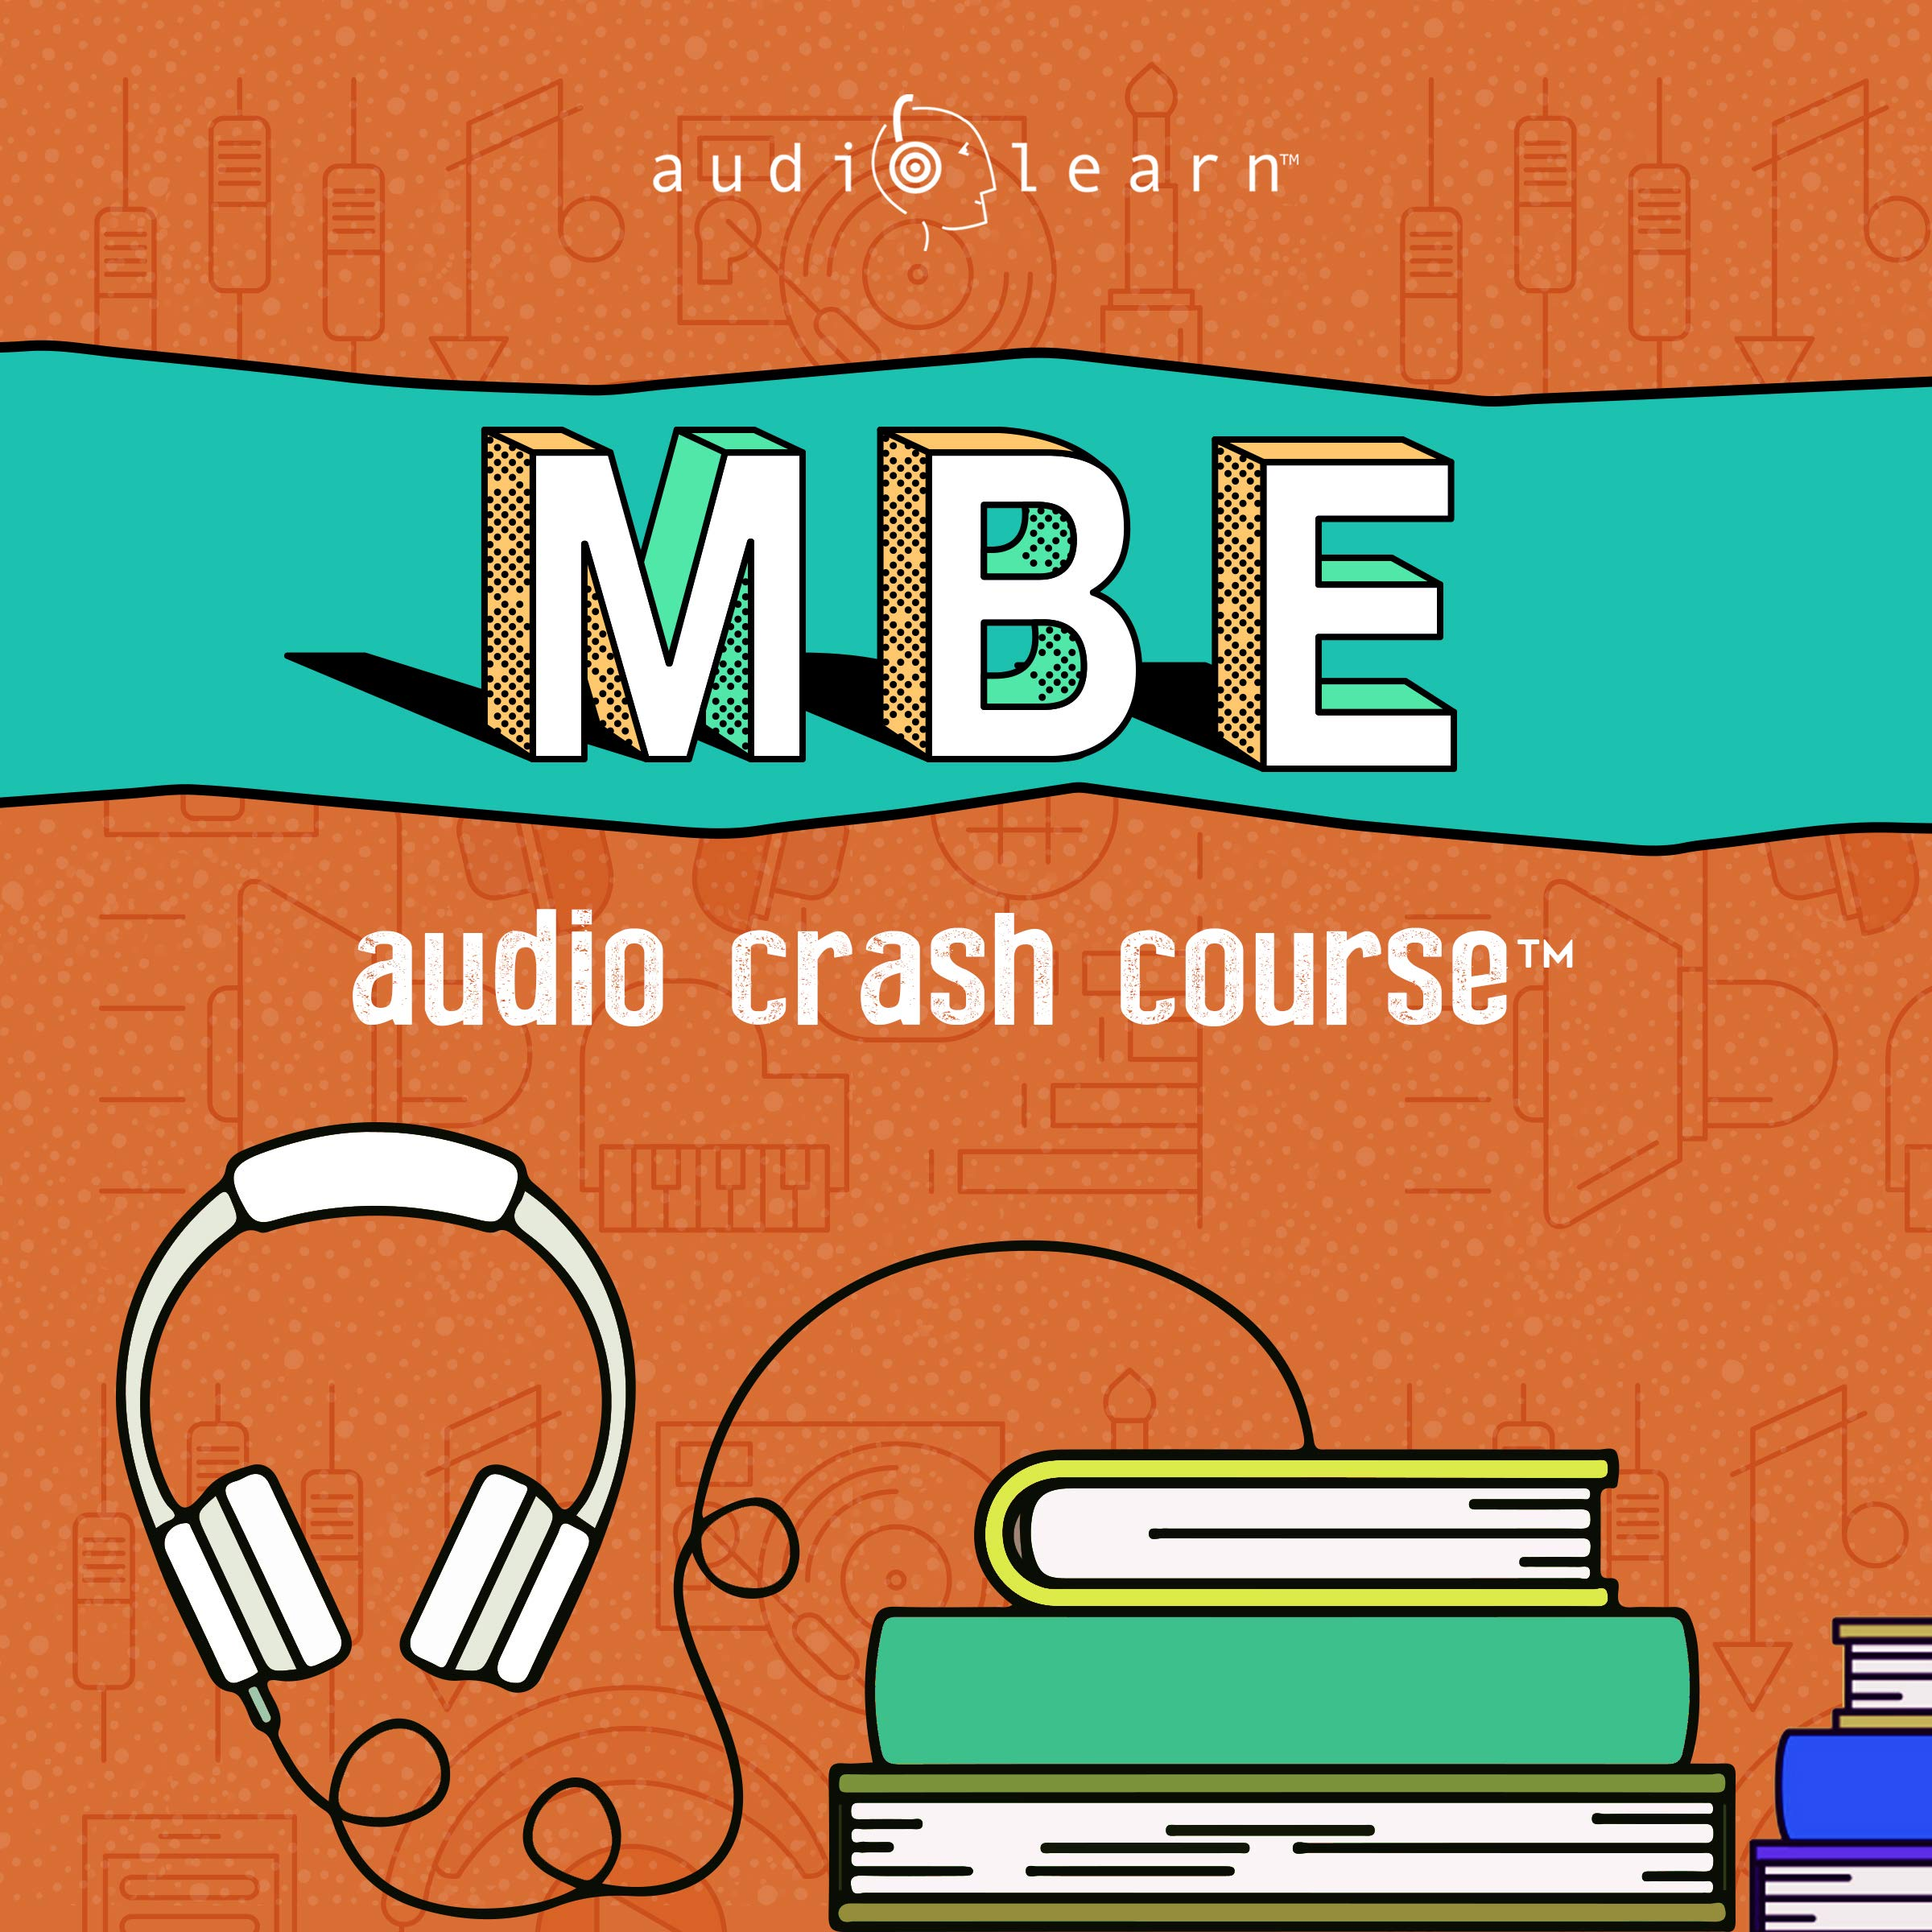 Mbe Audio Crash Course Complete Test Prep And Review For The Ncbe Multistate Bar Examination Audiolearn Legal Content Team Audiolearn Legal Content Team 9781592624355 Amazon Com Books